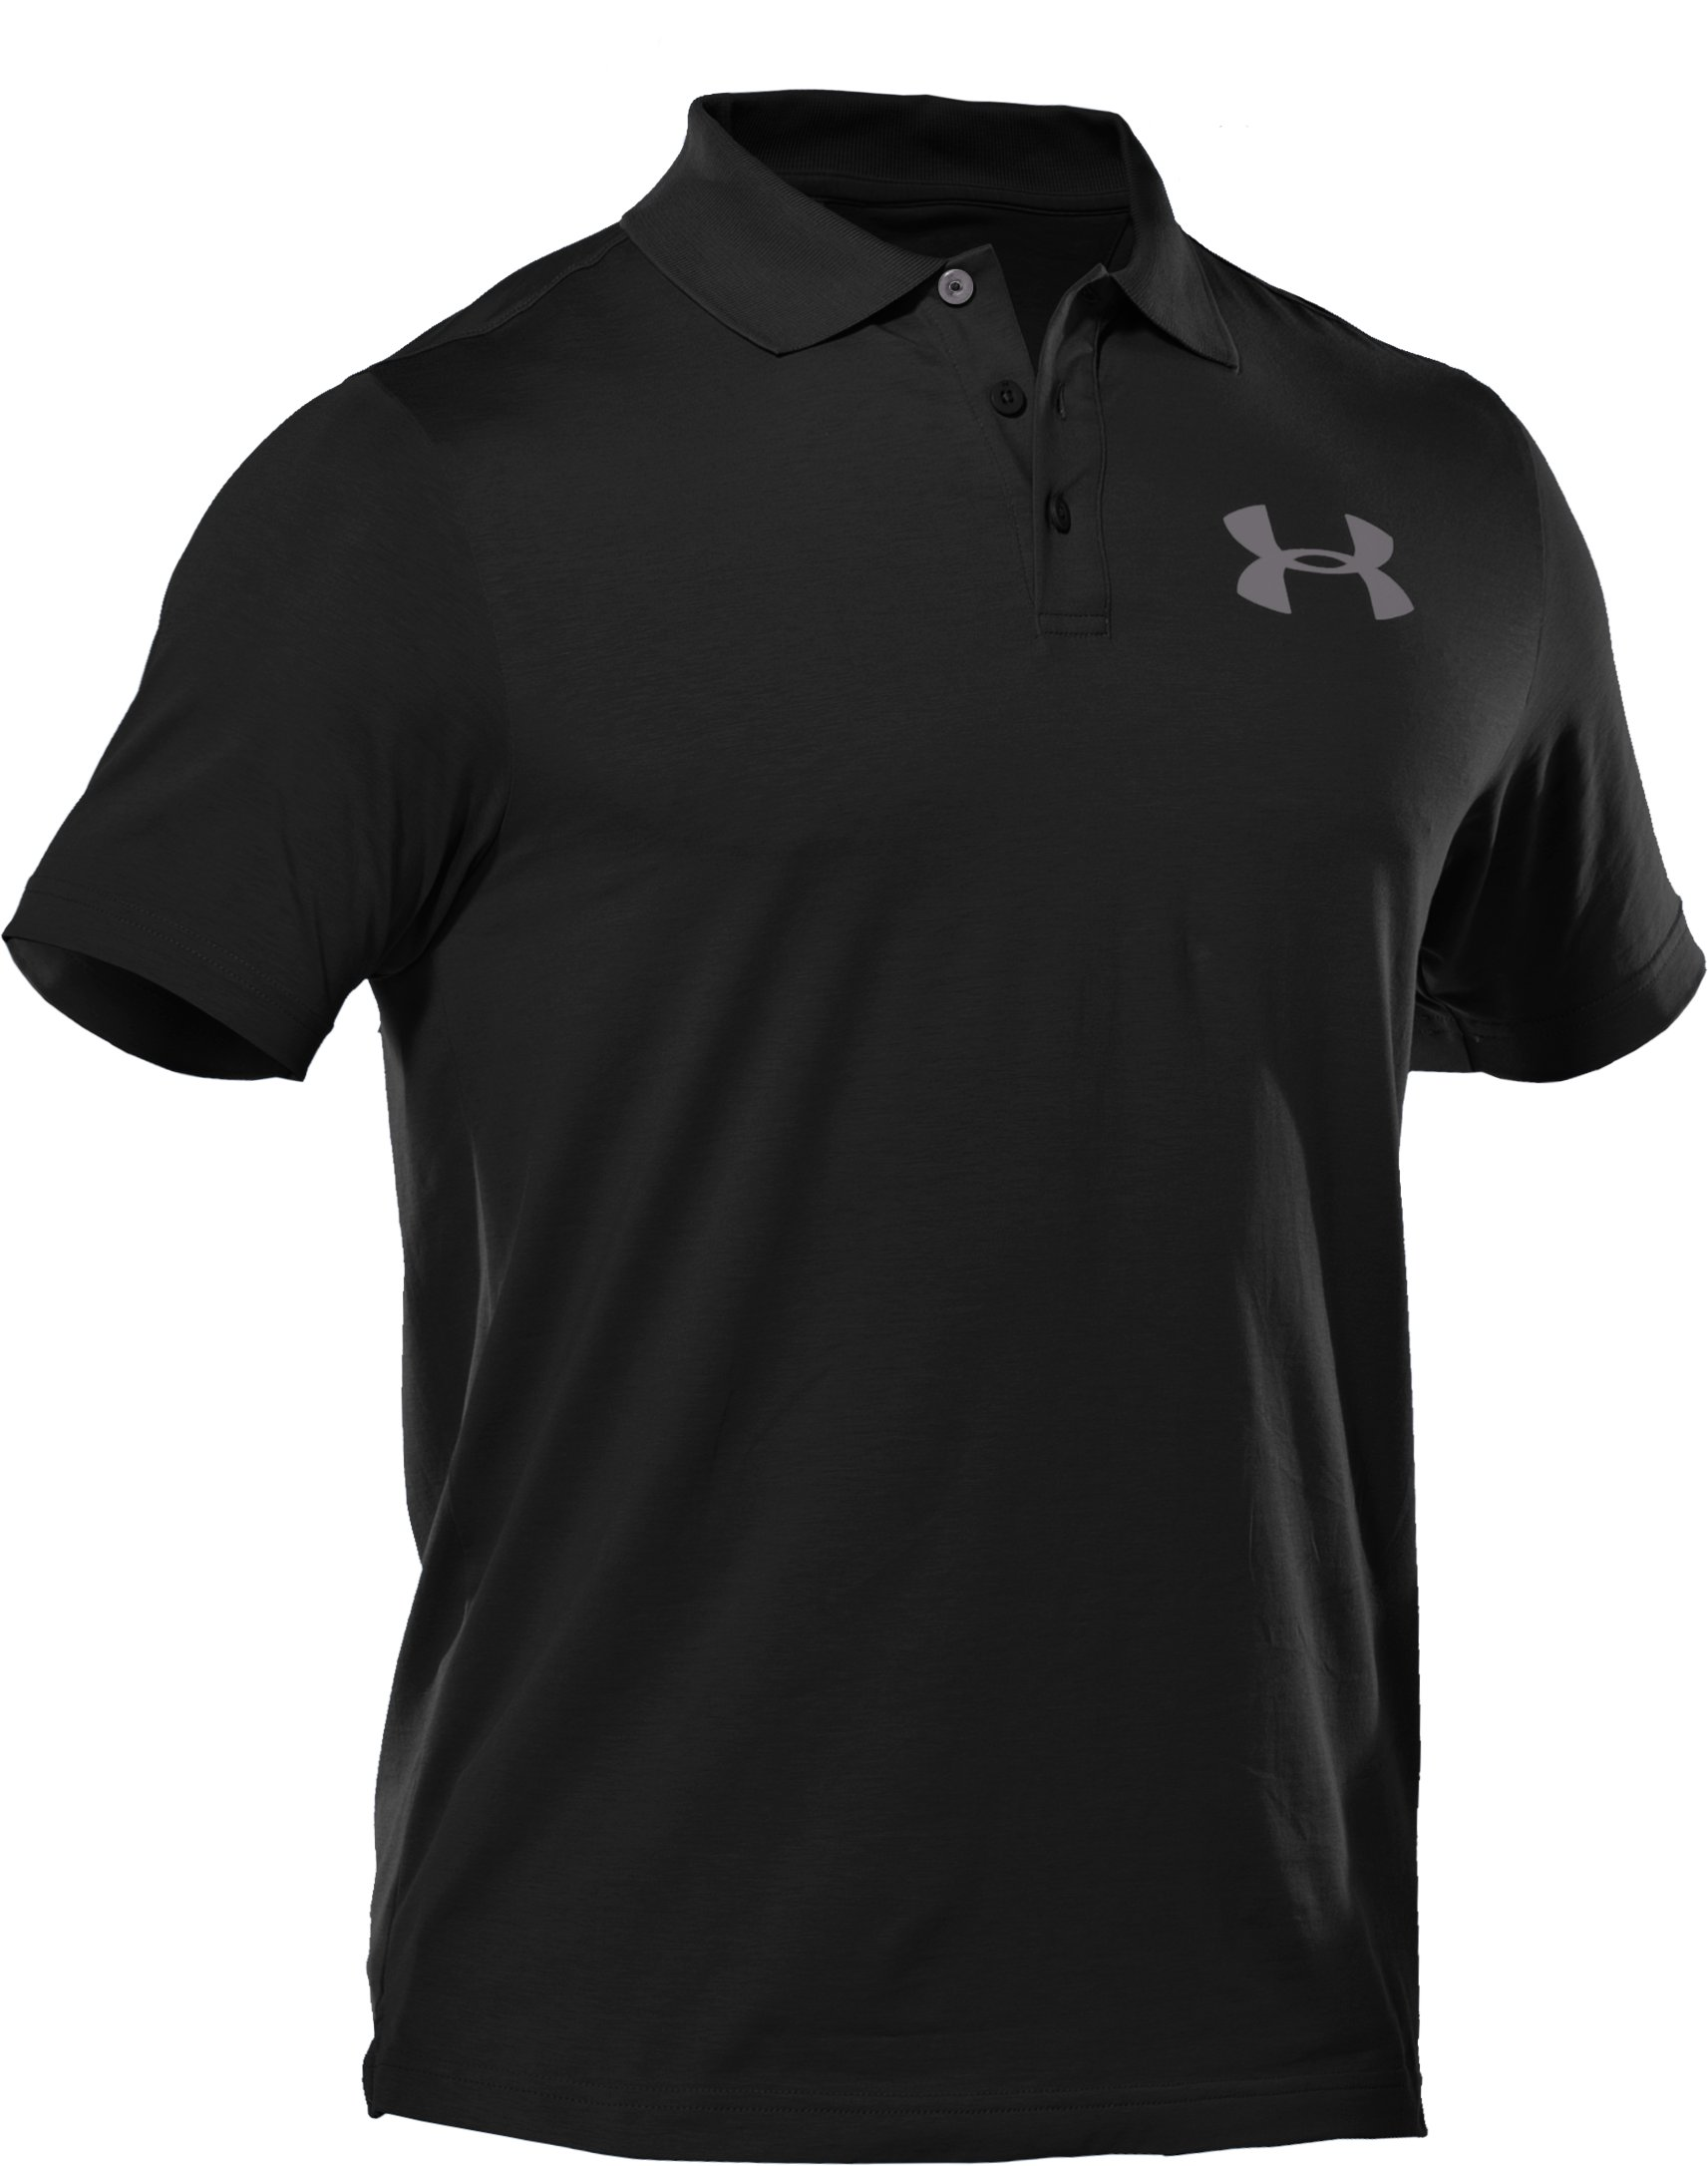 Men's Charged Cotton® Jersey Solid Polo, Black ,